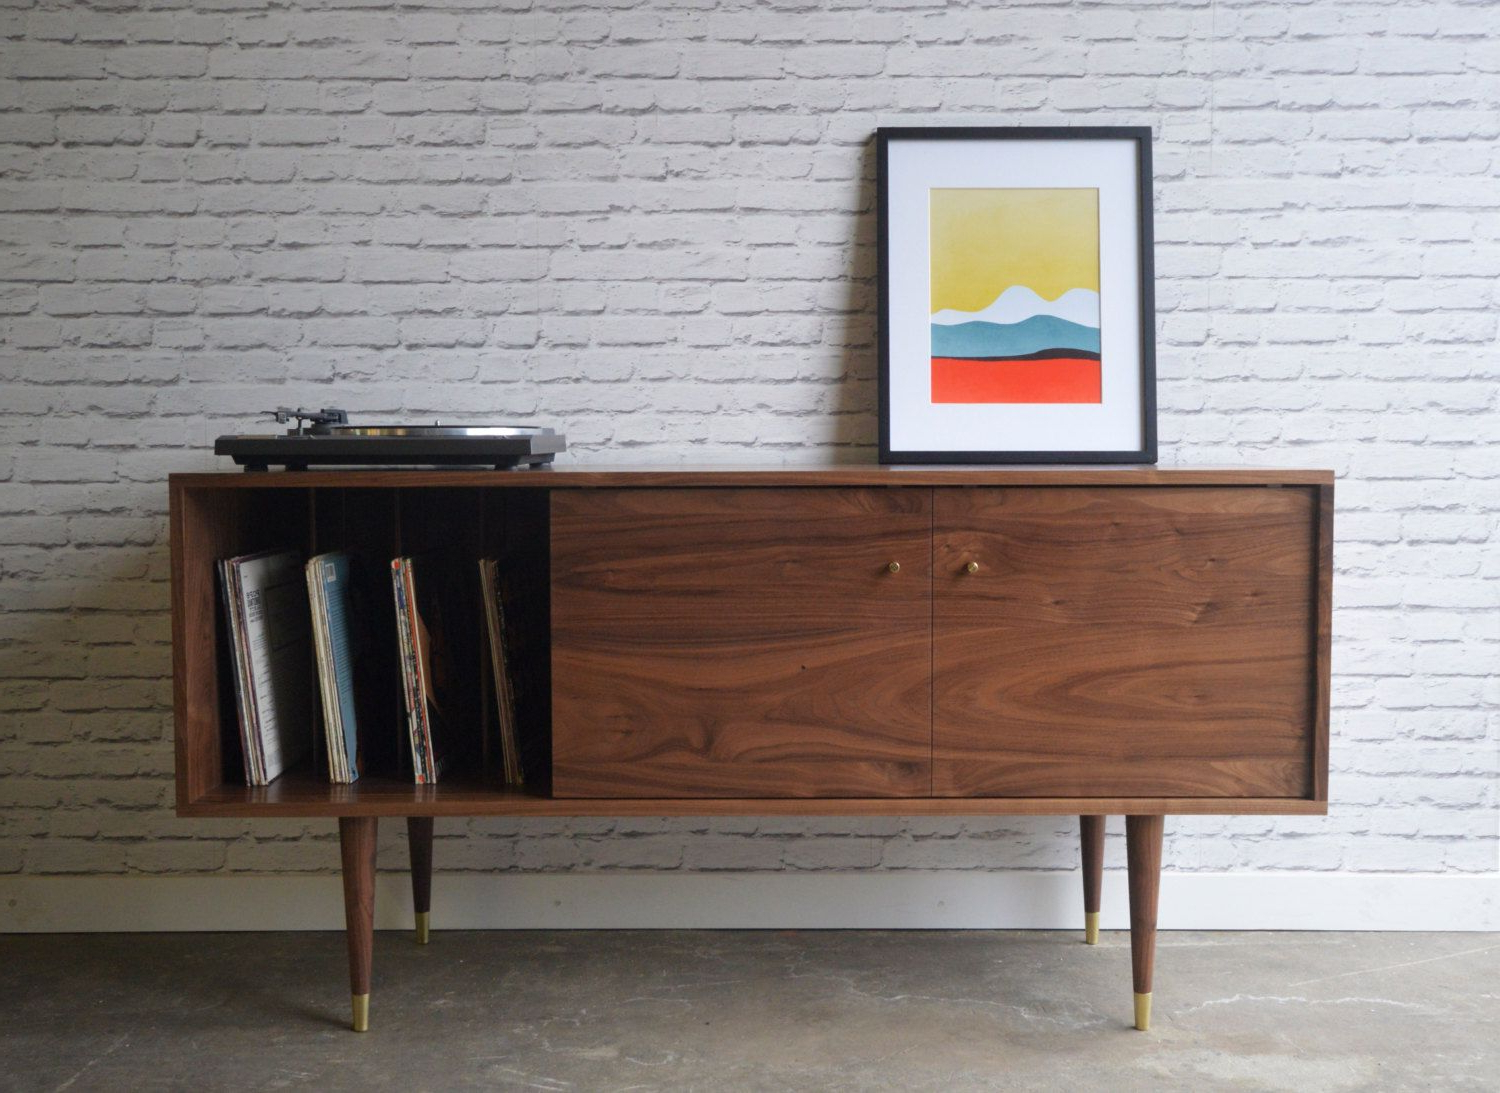 Solid Walnut Media Credenza With Record Storage – Kasse With Regard To Bright Angles Credenzas (View 18 of 20)